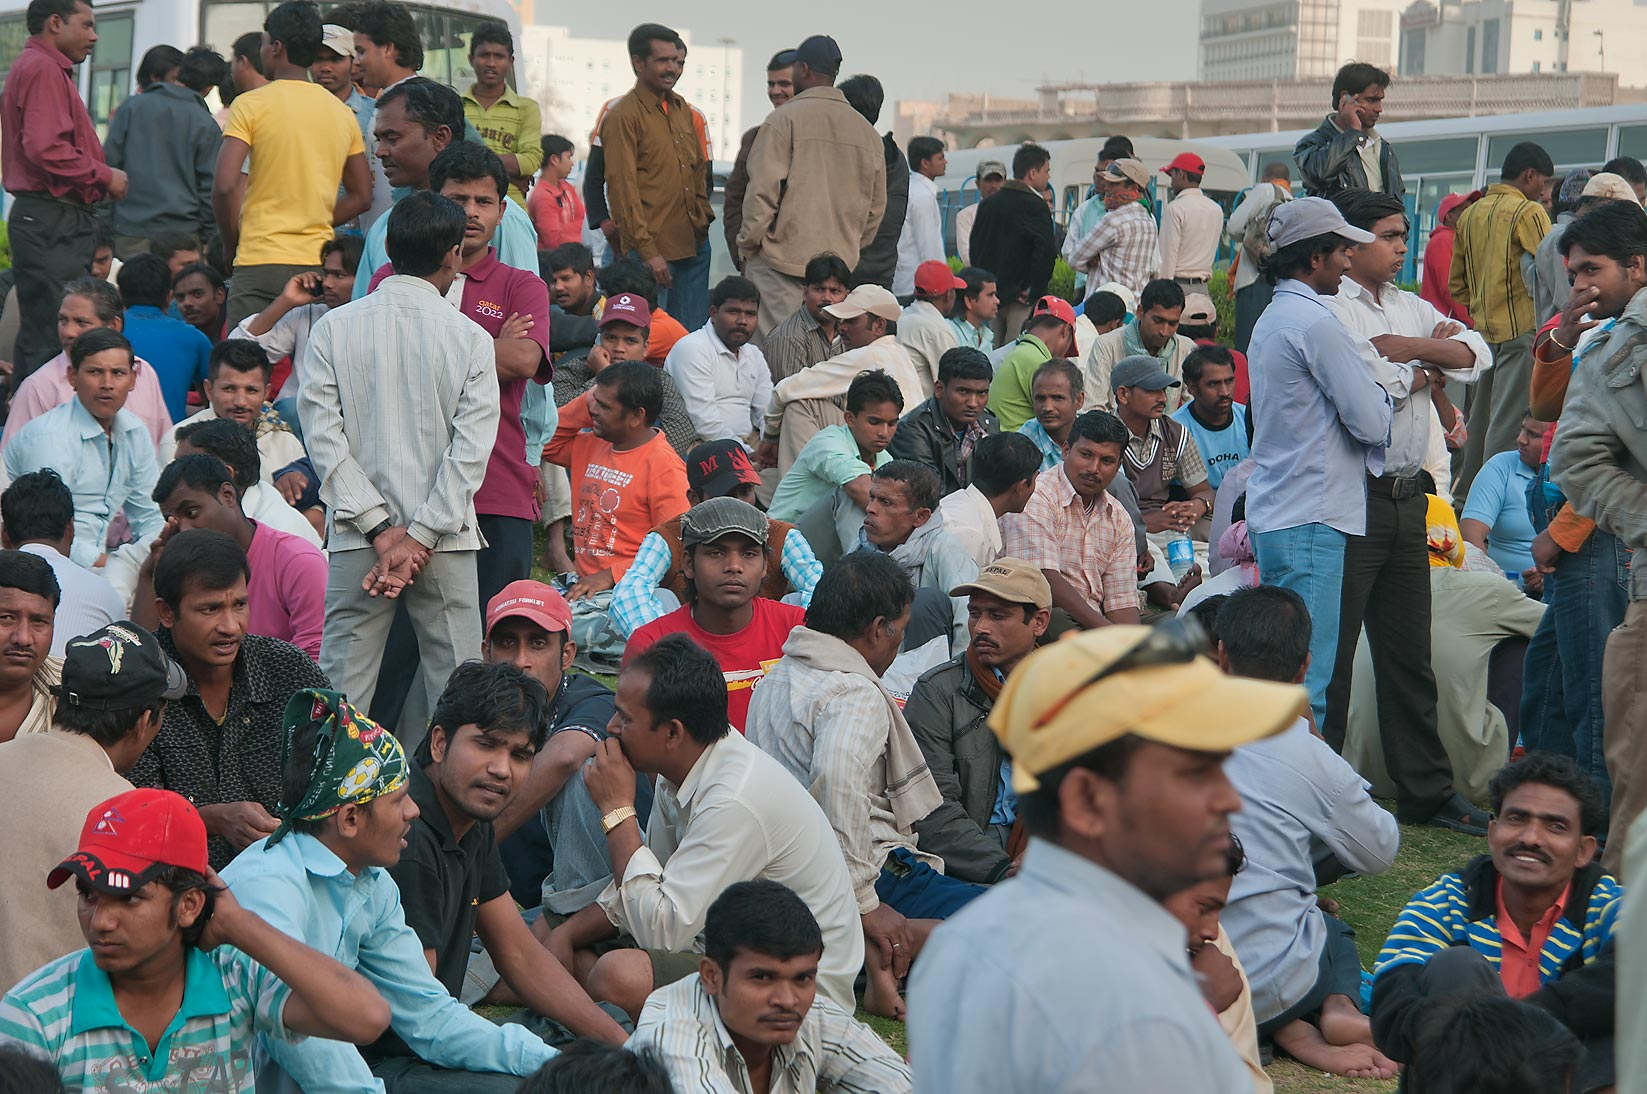 Workers socializing on Friday evening on a lawn...Al Ghanim) Bus Station. Doha, Qatar